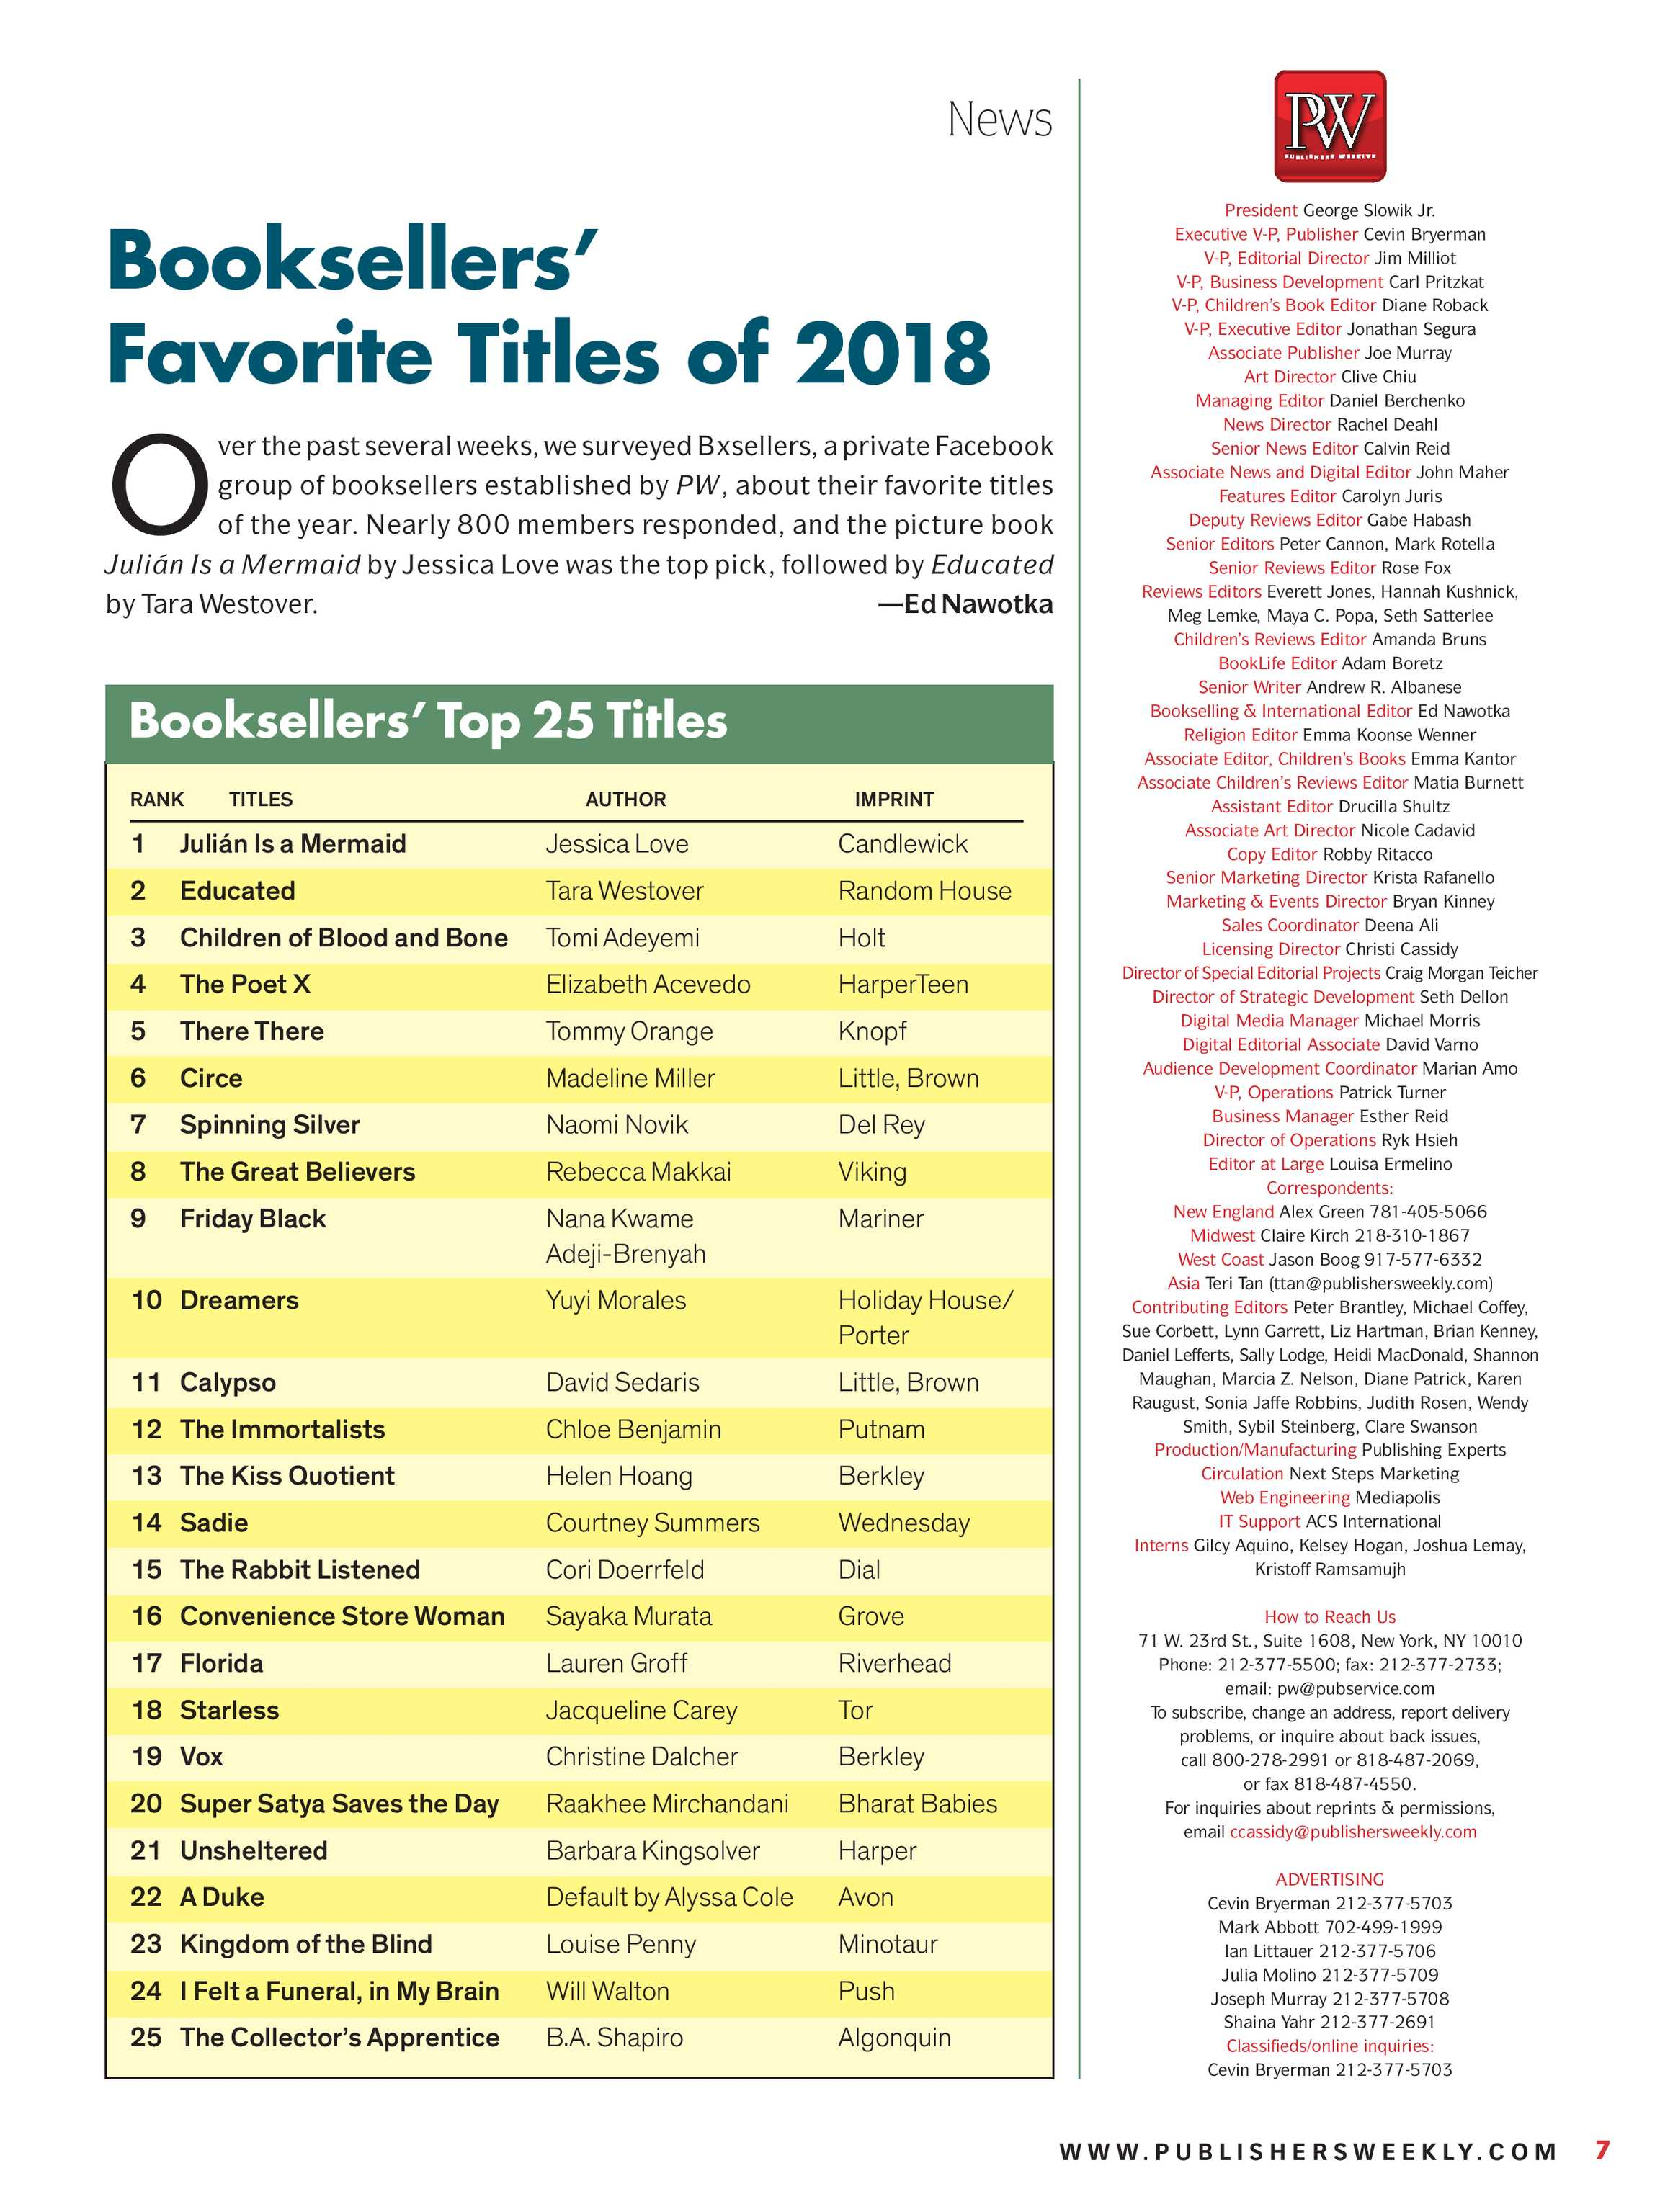 Publishers Weekly - December 24, 2018 - page 7